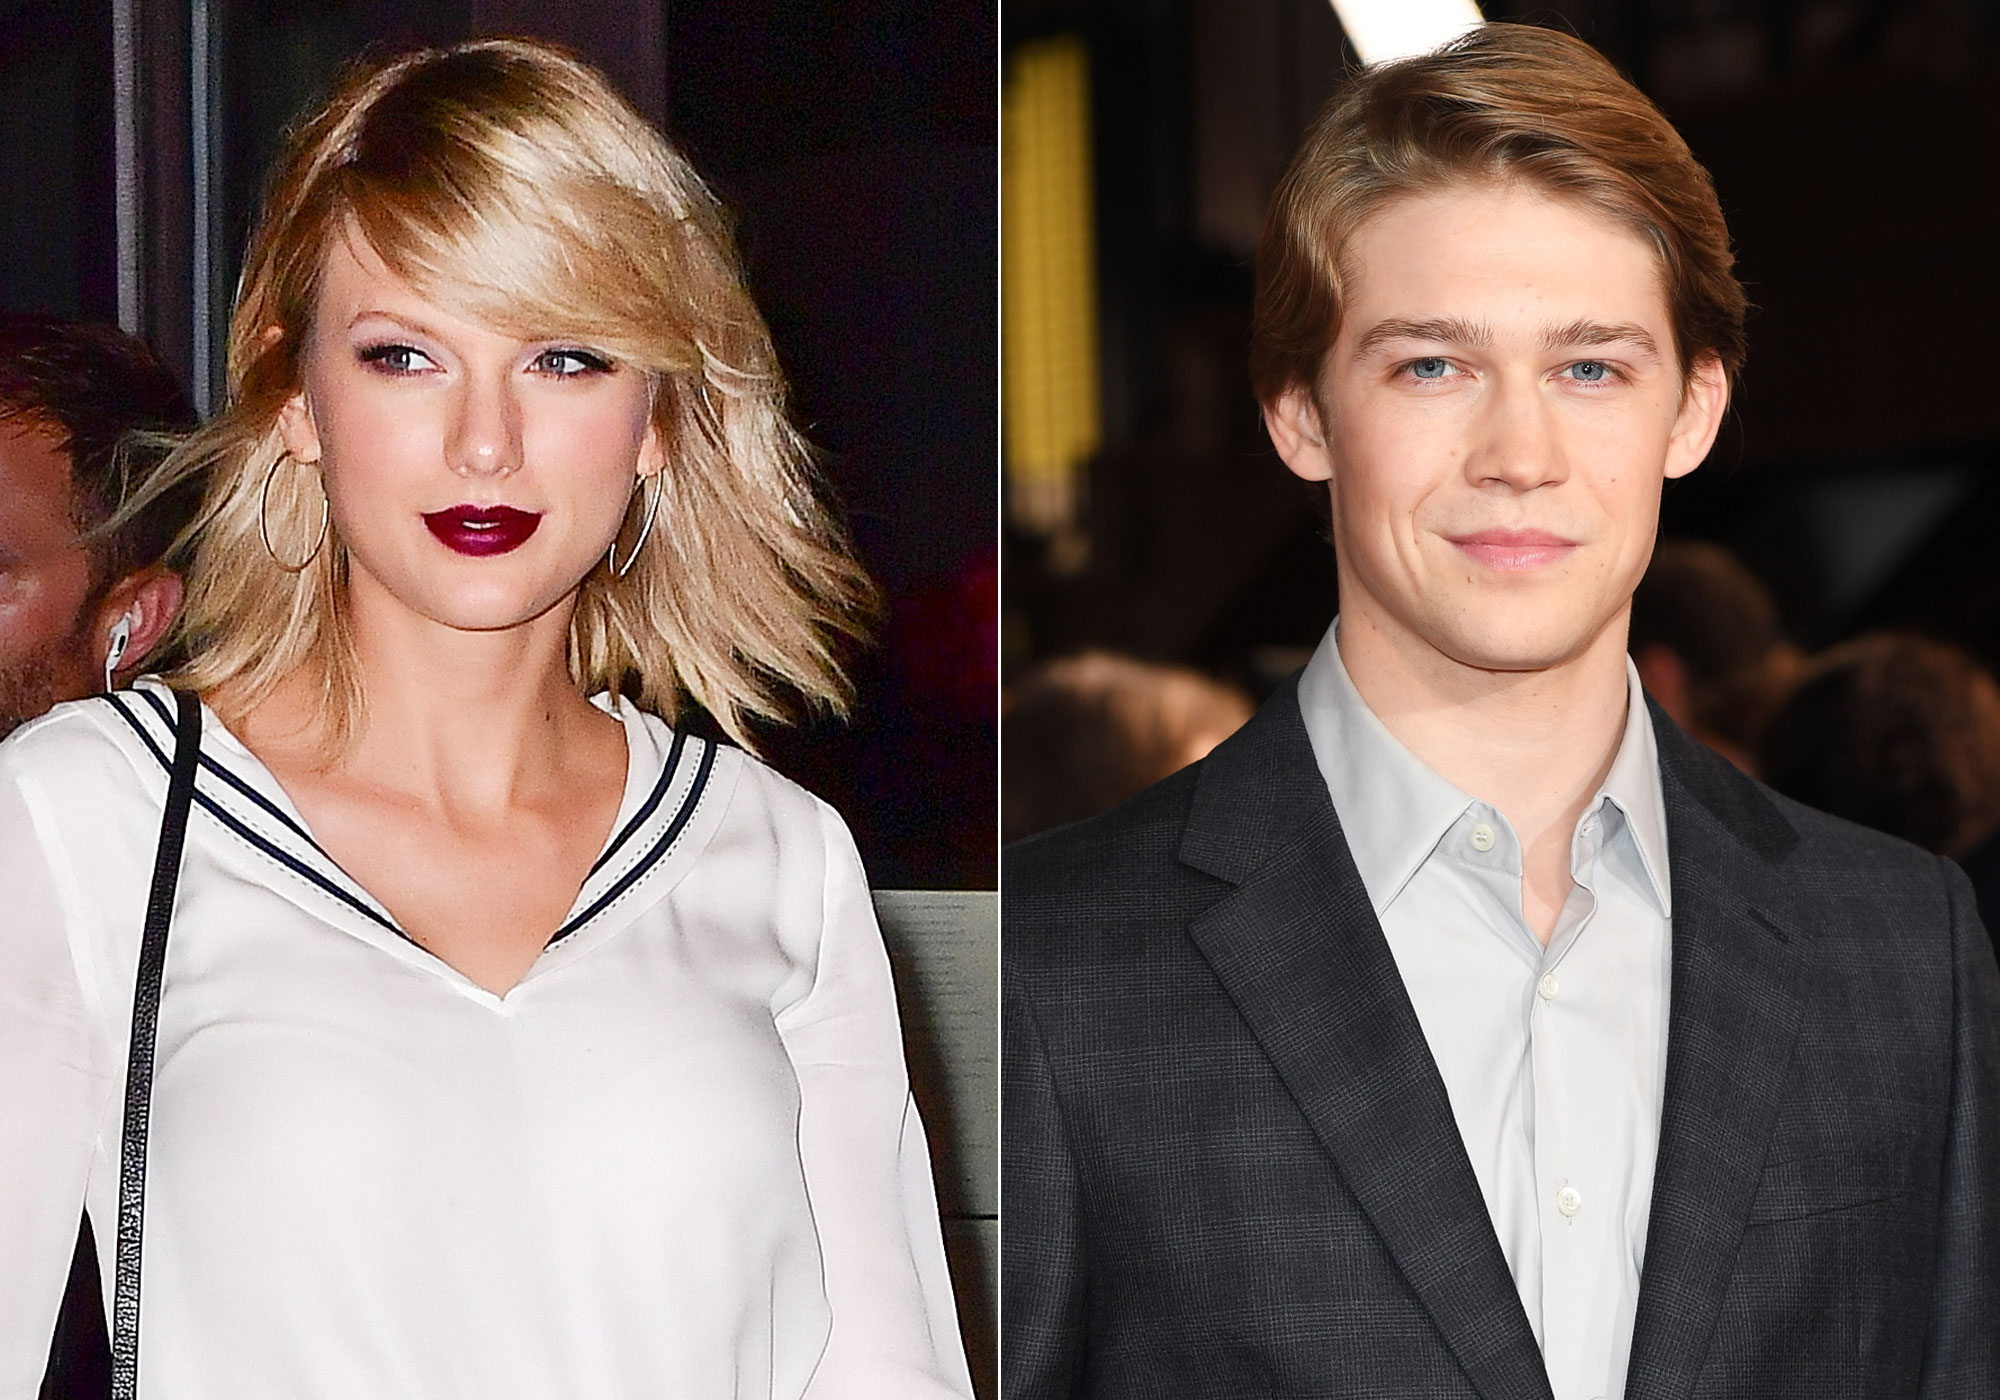 Taylor Swift and Joe Alwyn hold hands in NY